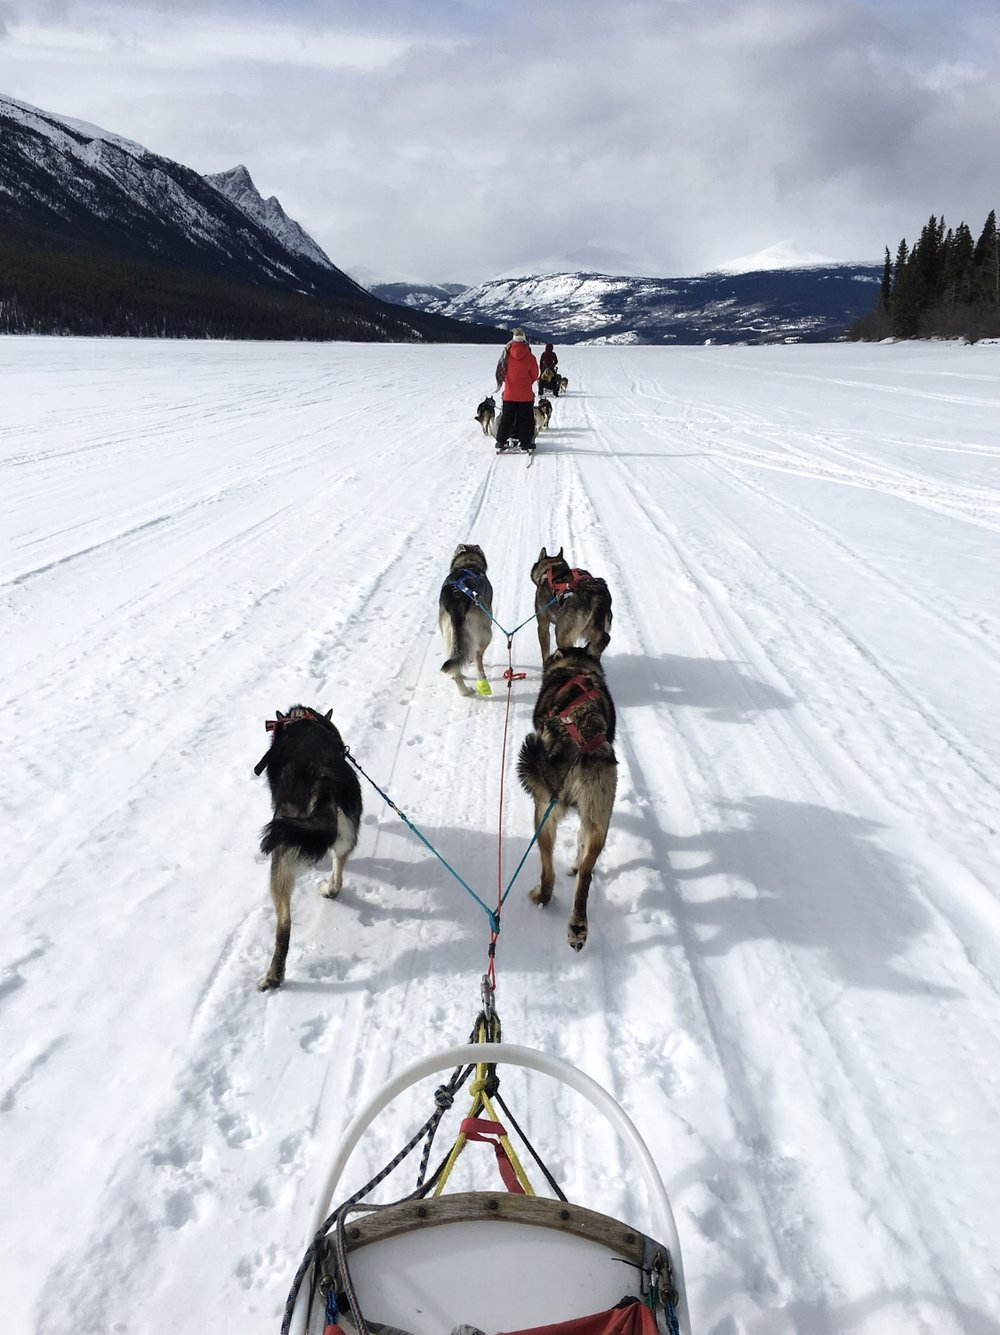 DOGSLED & SNOW MOBILE THROUGH WINTER